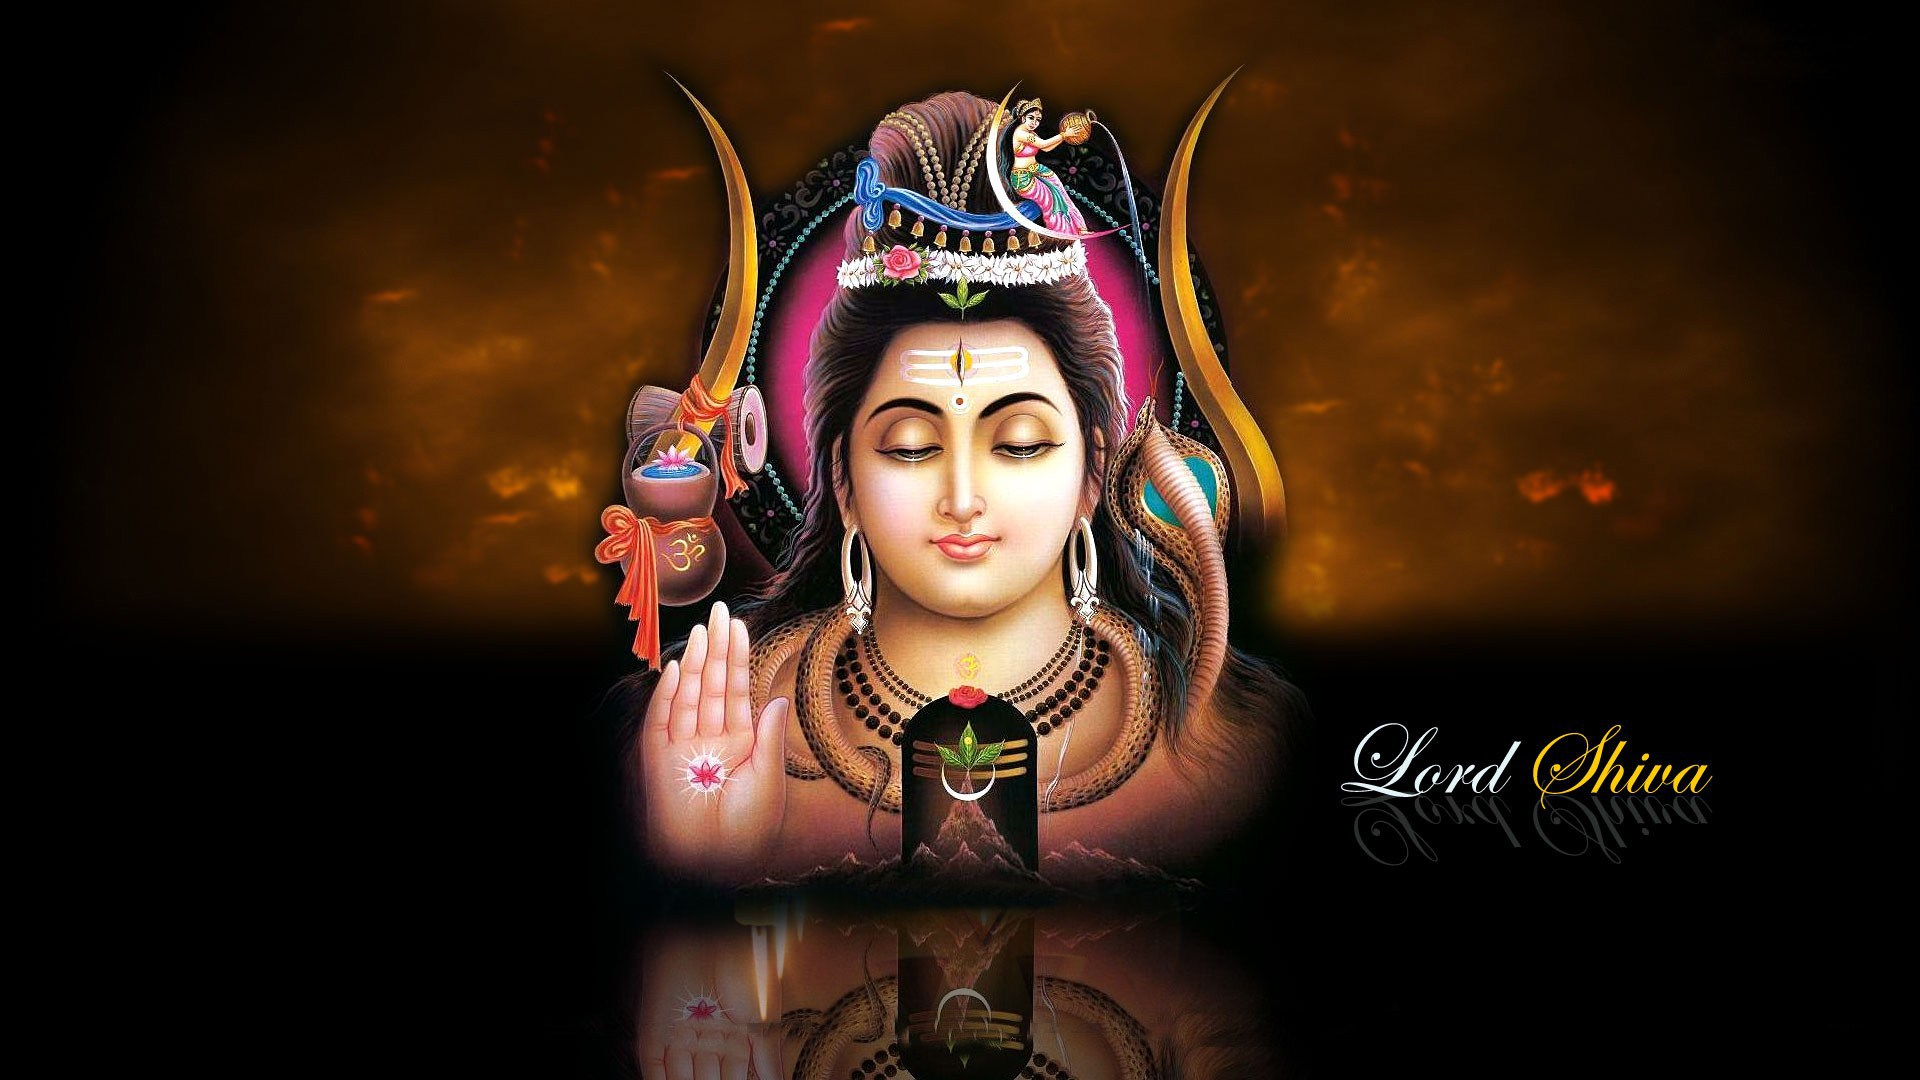 Lord Shiva Images Free Download